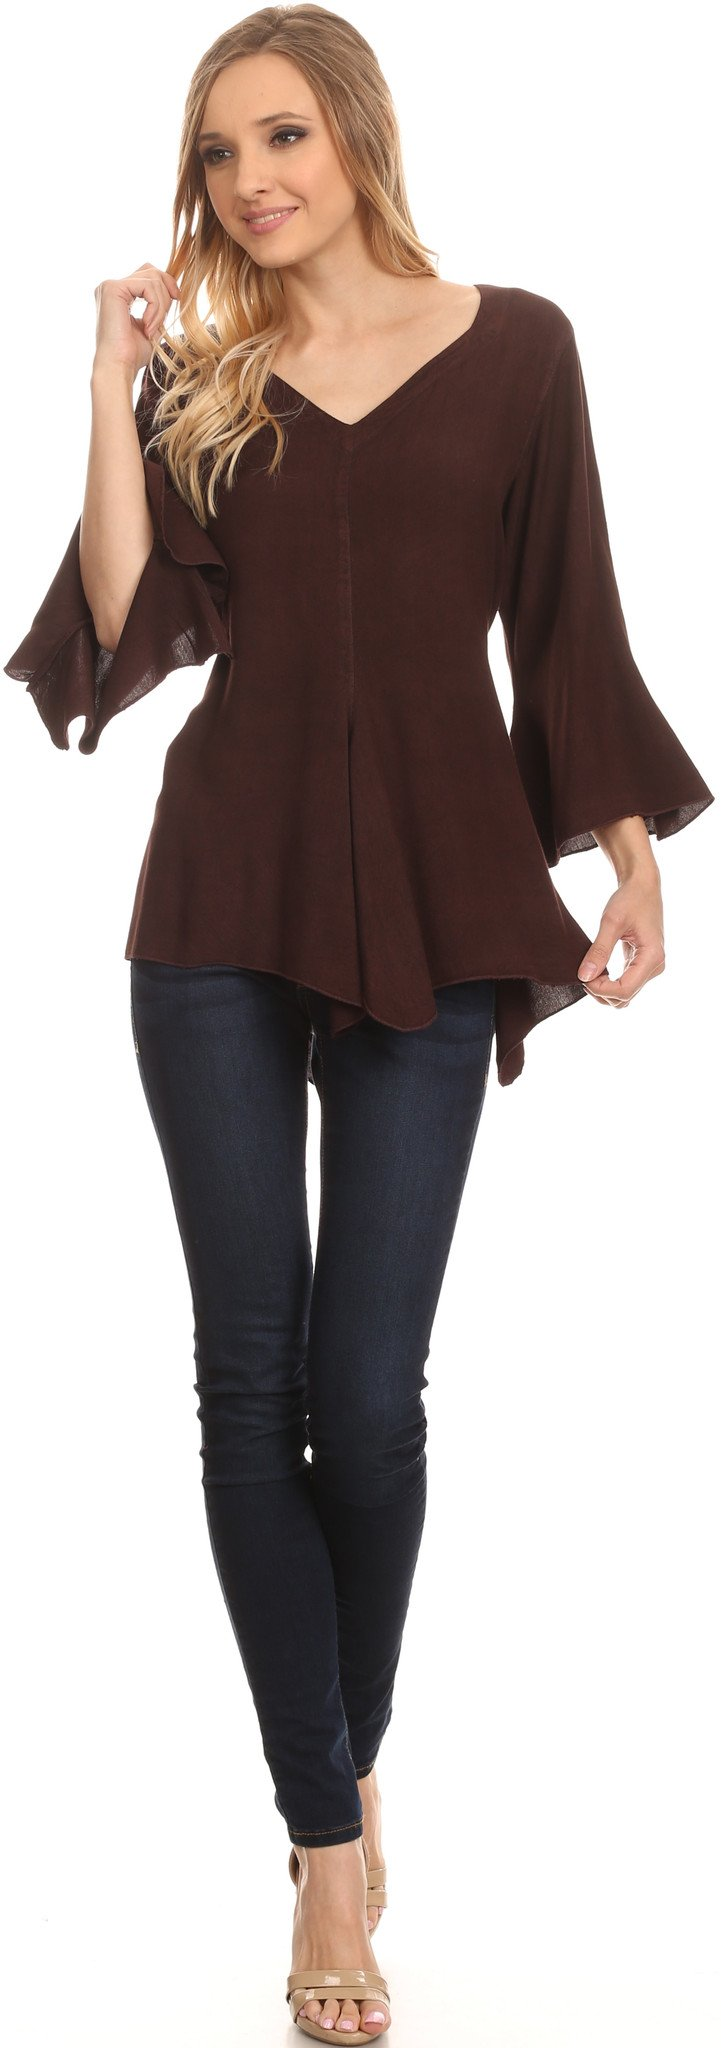 Sakkas Geena Long Tall V Neck 3/4 Length Bell Sleeve With Adjustable Side Straps